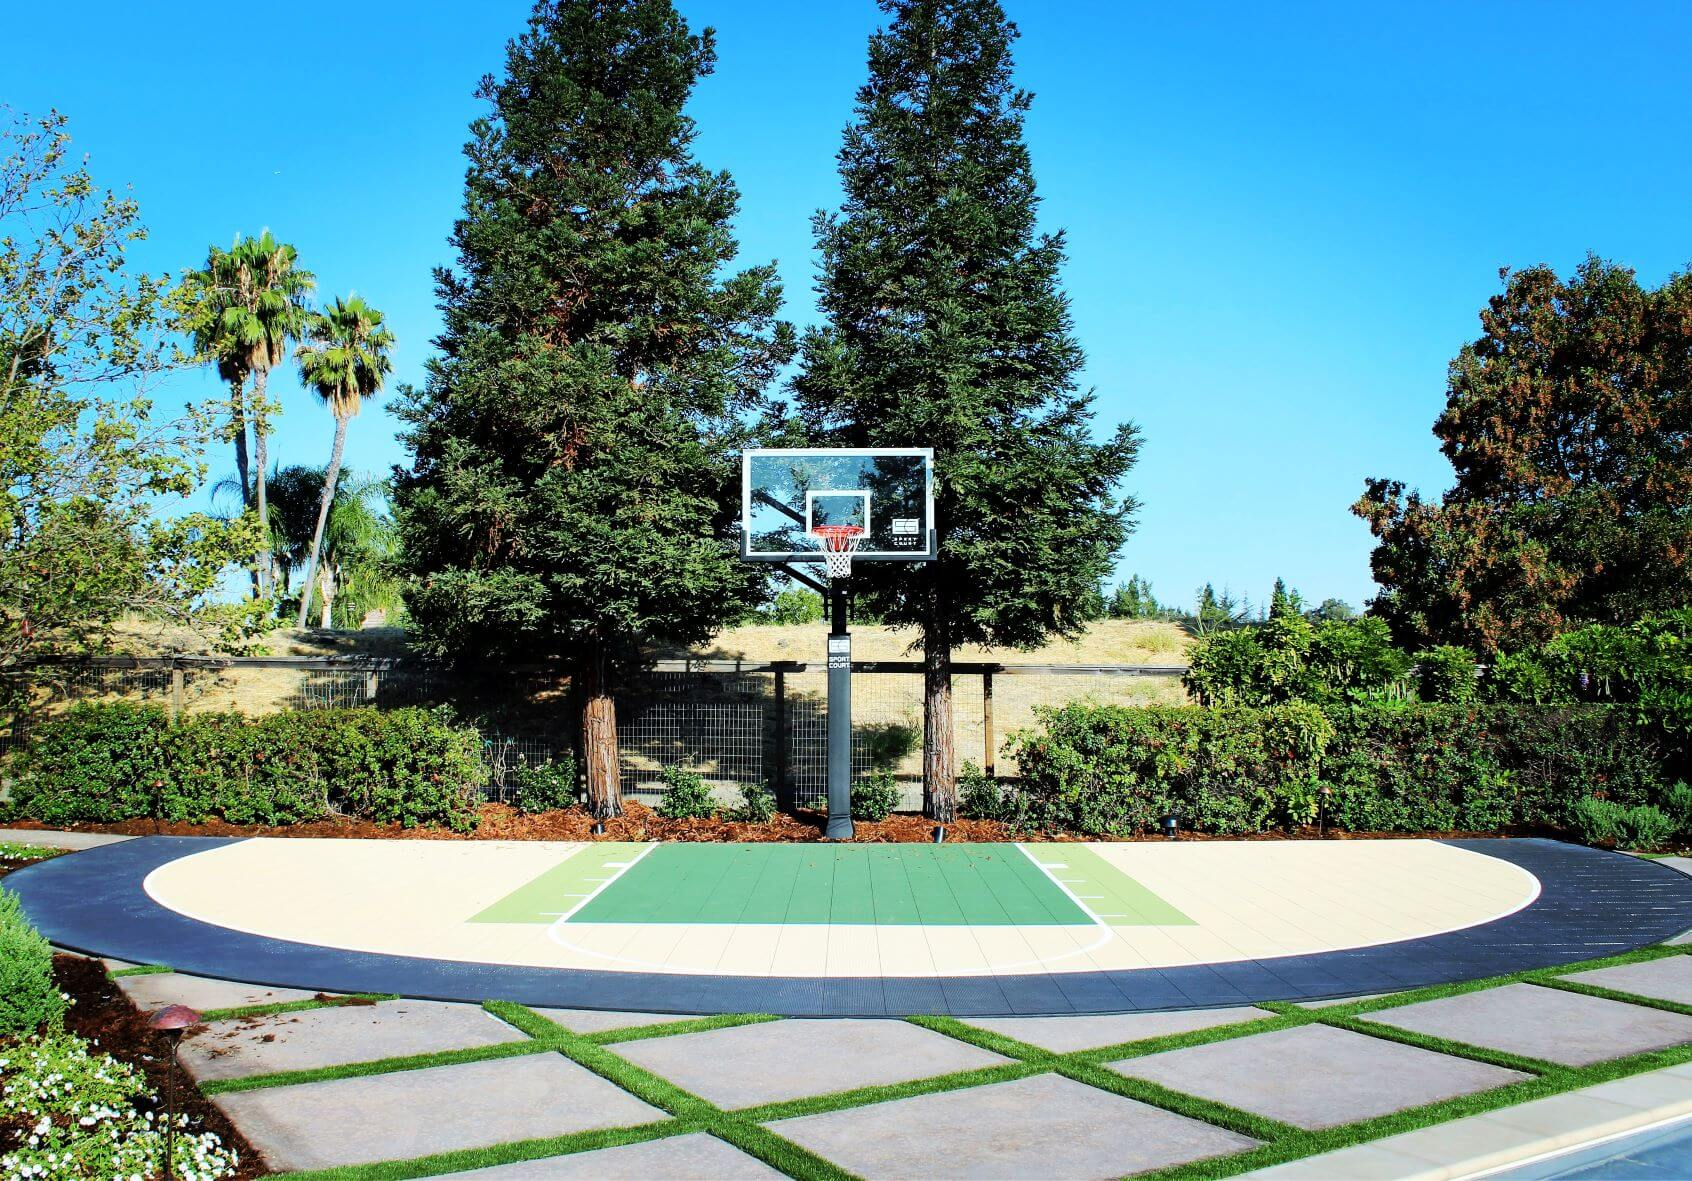 23.SIMPHOME.COM design ideas backyard basketball court allsport america inc